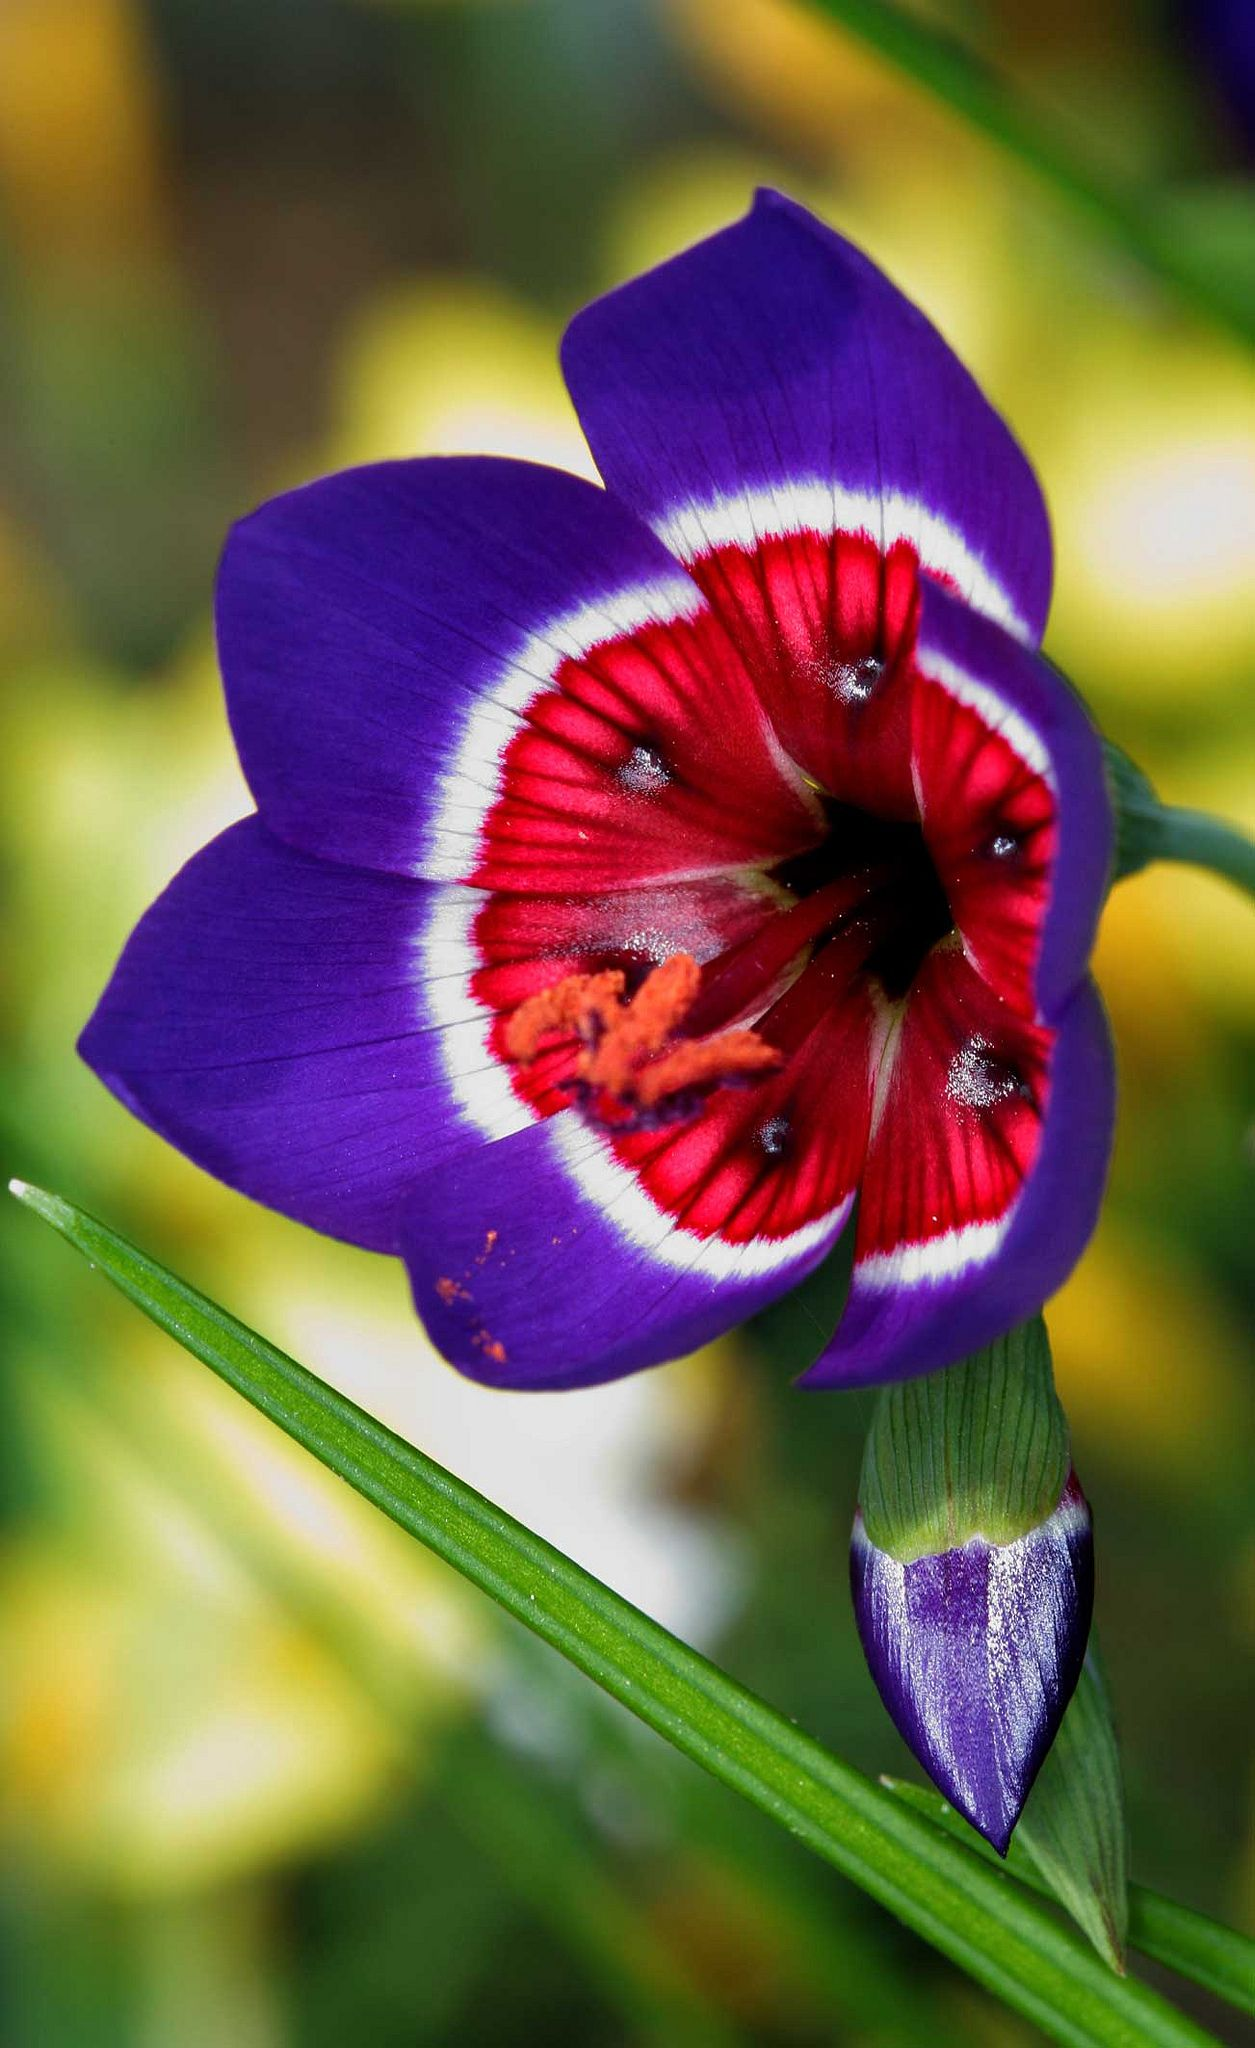 Geissorhiza-radians | Flowers - Their Beauty, Colors and Design ...